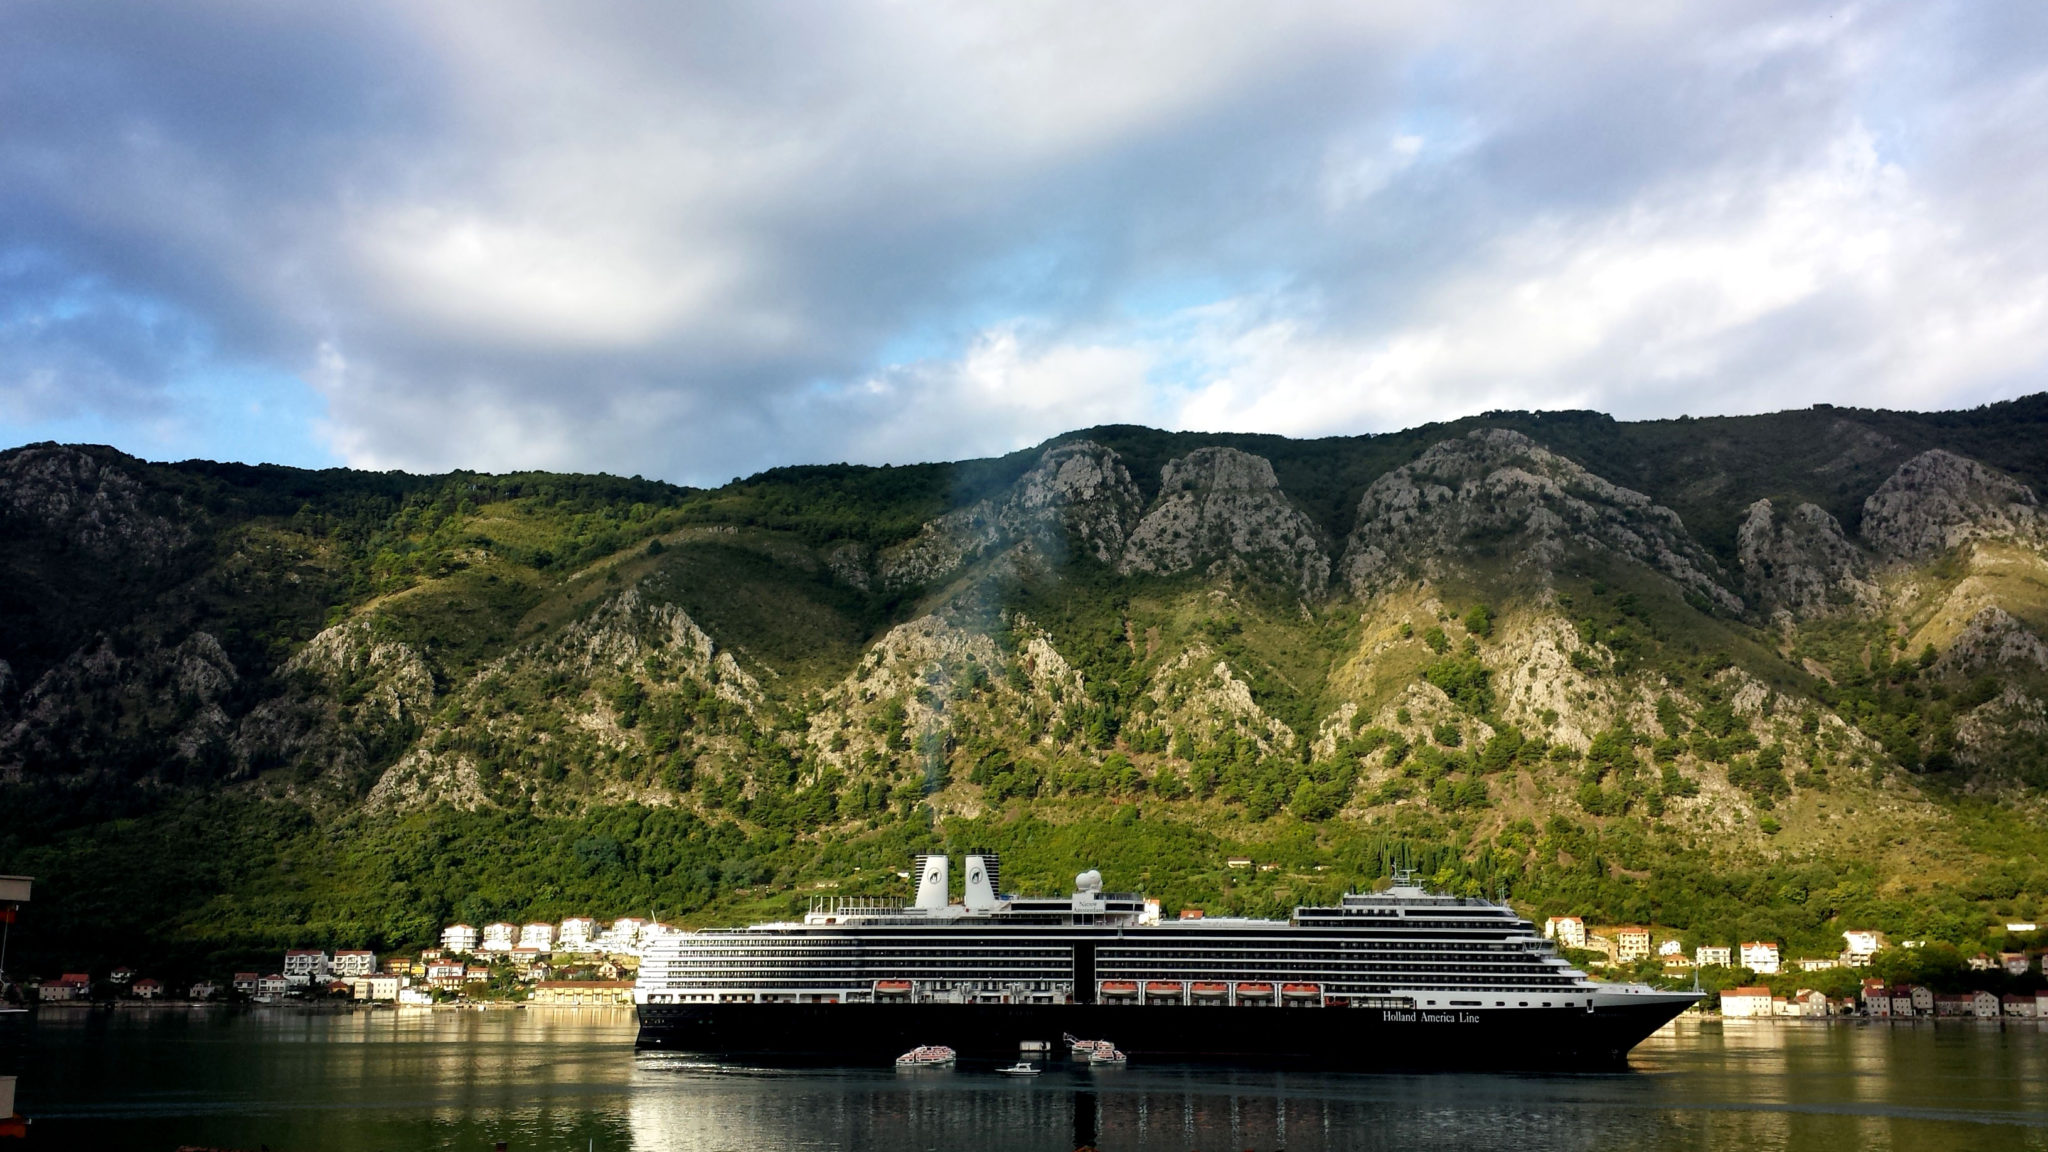 Hema_Montenegro_through_kotor_ bay_cruiser_mountains